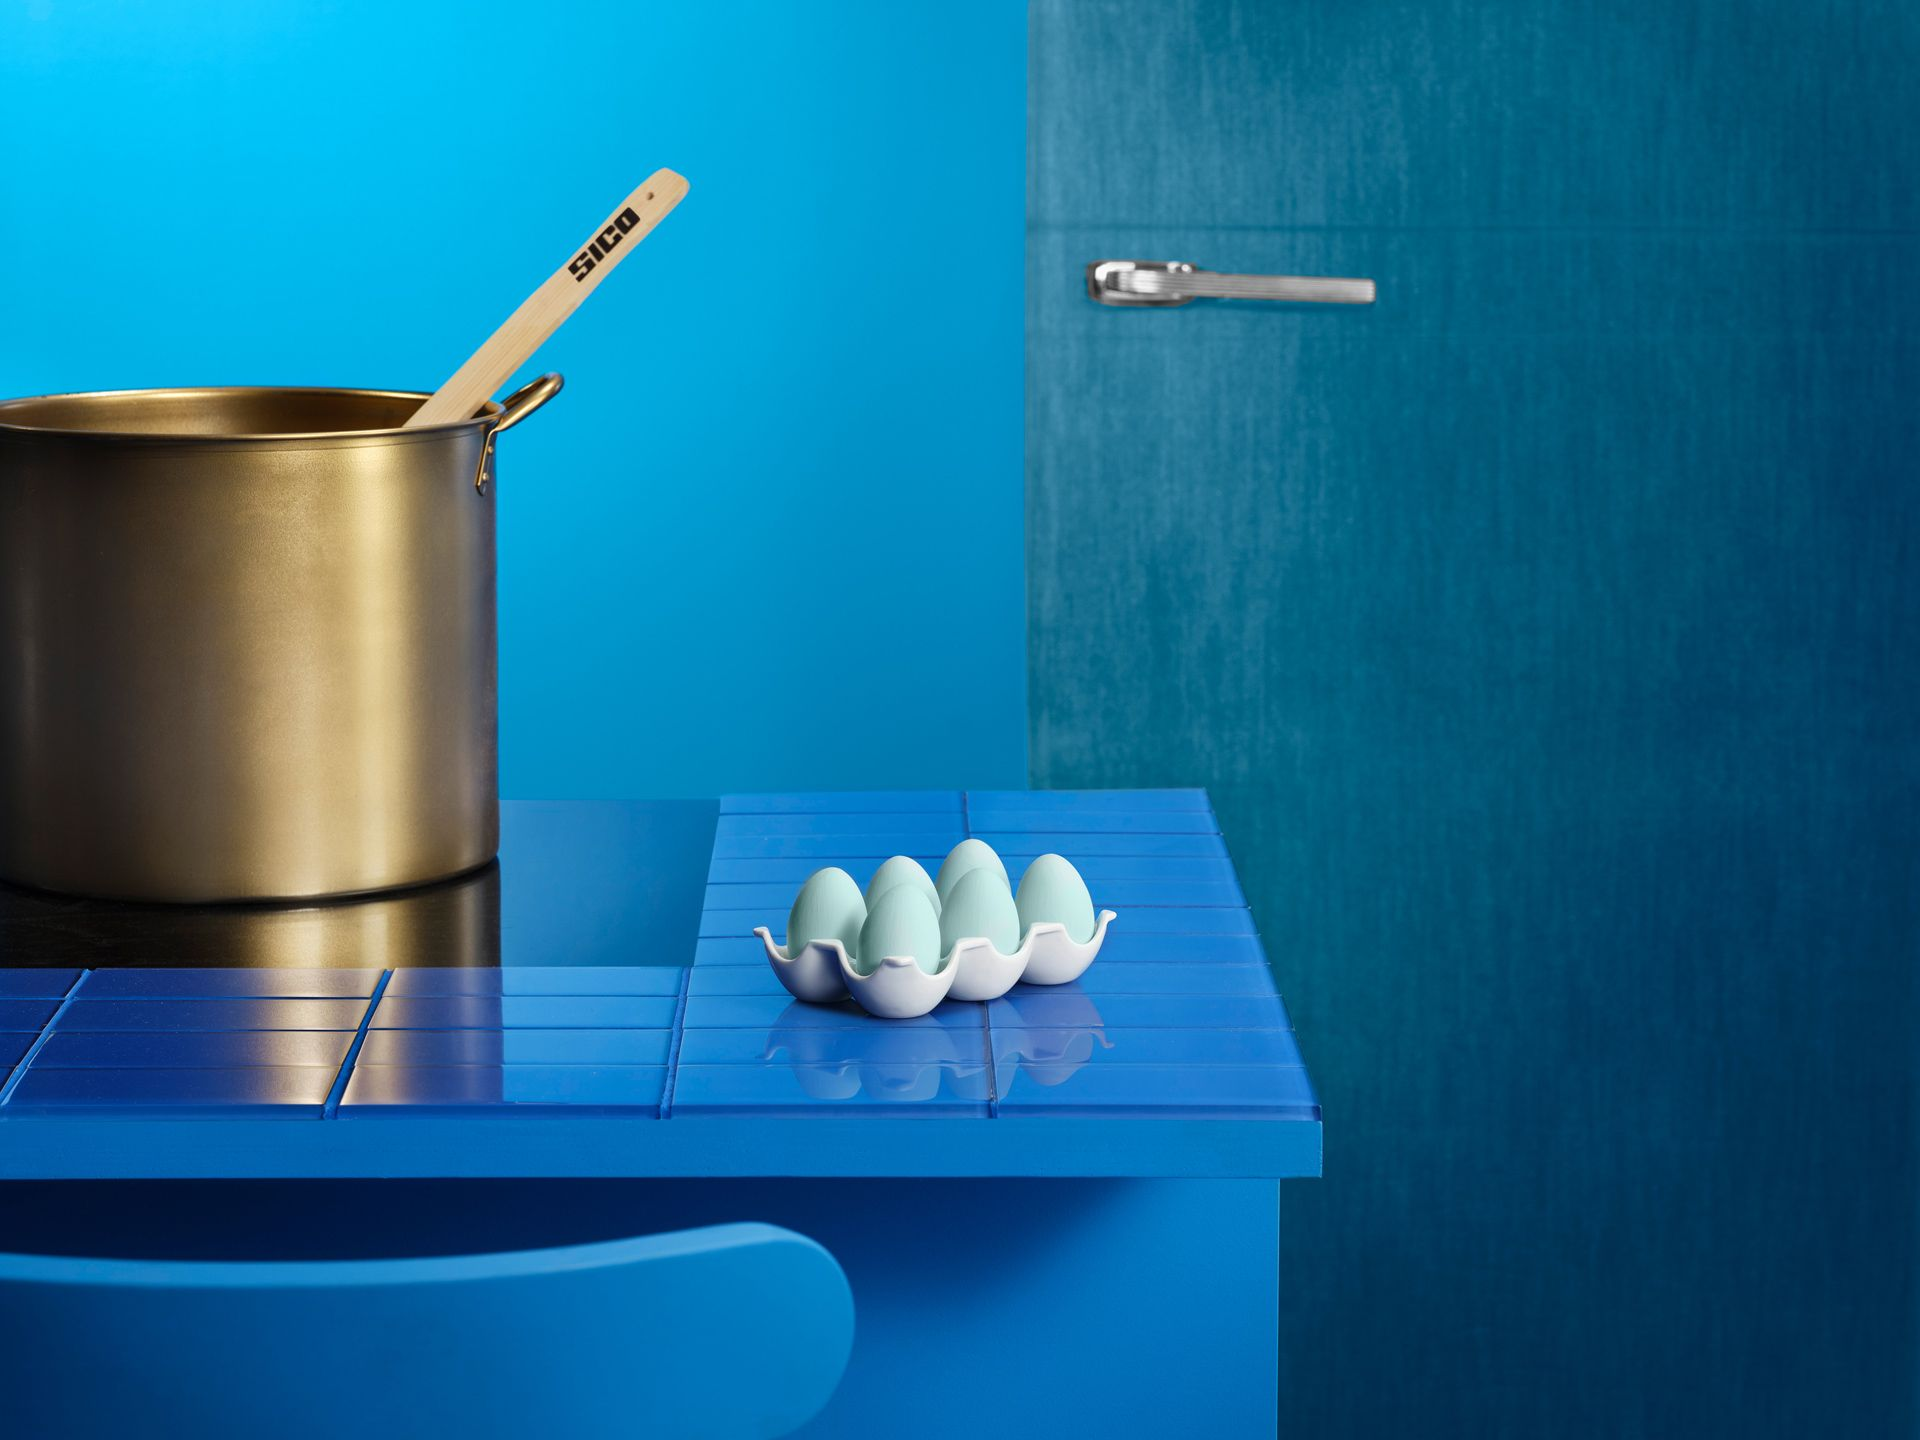 Color blocking of blue : the room is painted blue, the door a different blue, the table a different blue. There is a golden pot and a pack of six light blue eggs.